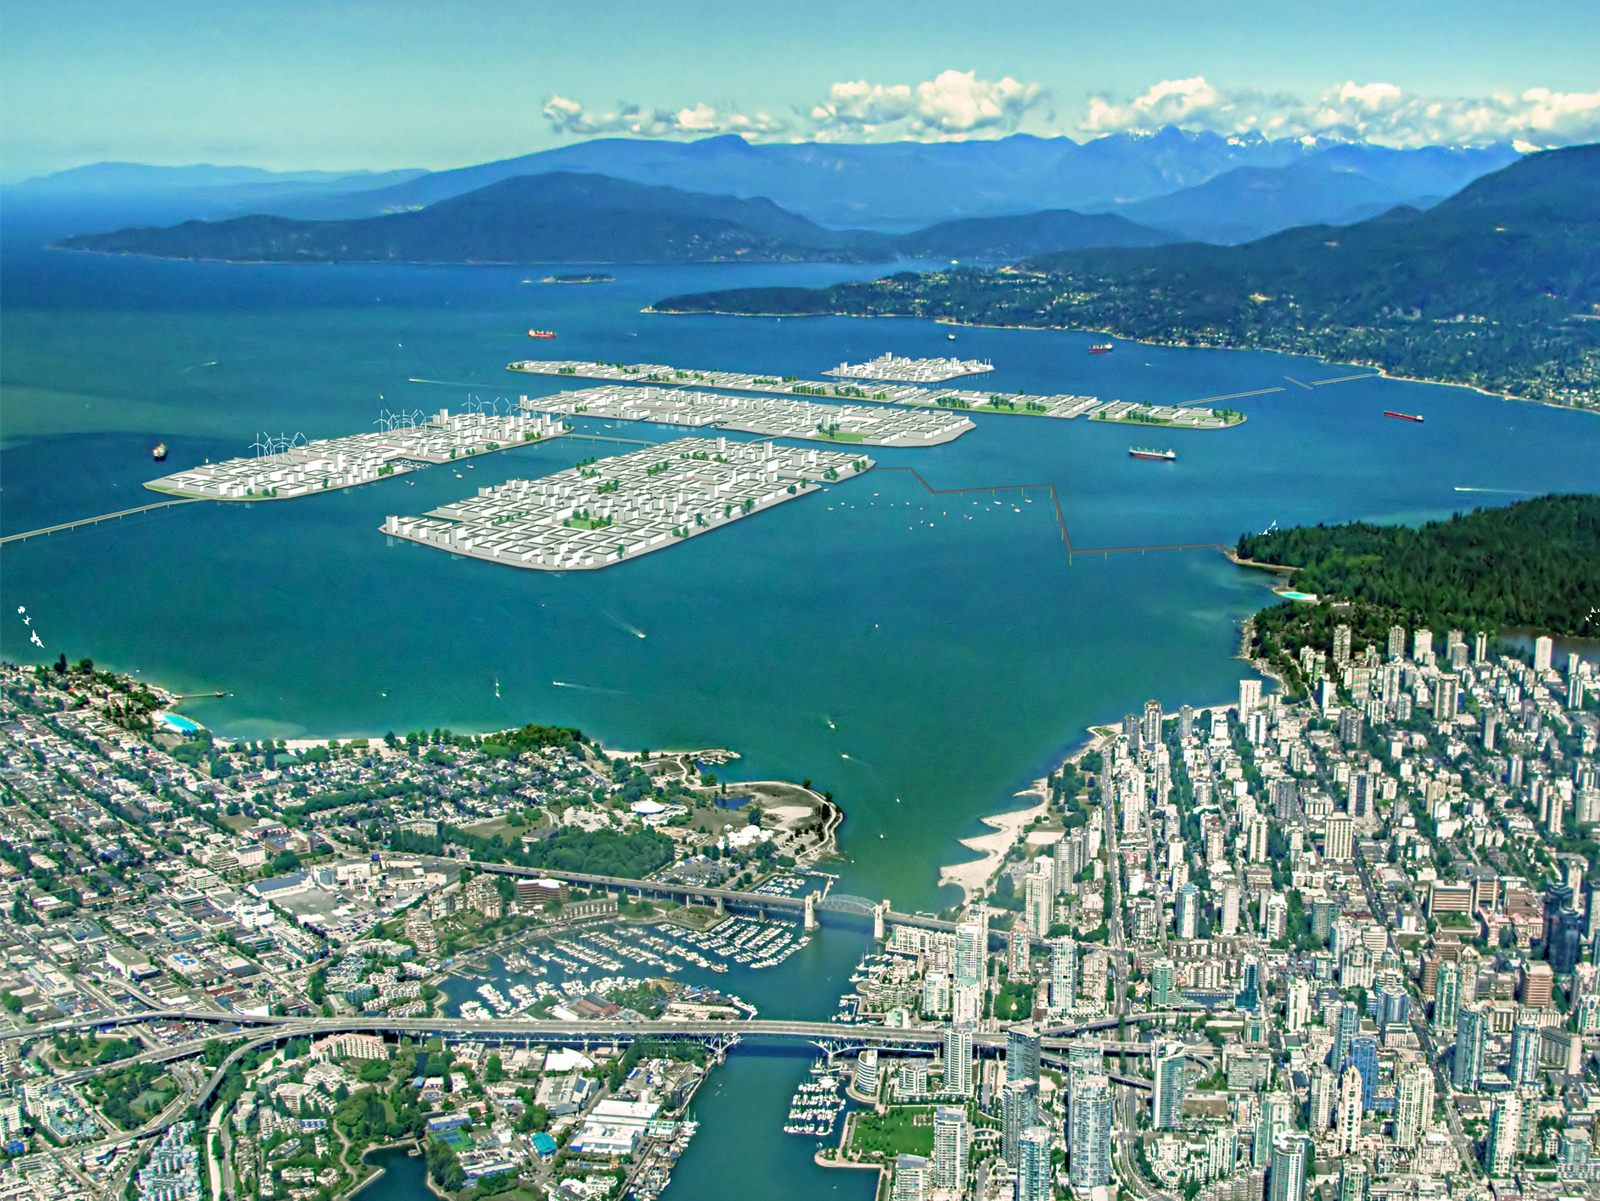 a comparison of the cities of victoria and vancouver 2011-9-29  british columbia cities have some of the cleanest air on earth, according to the world health organization, which collected air quality data from over a thousand cities around the world.